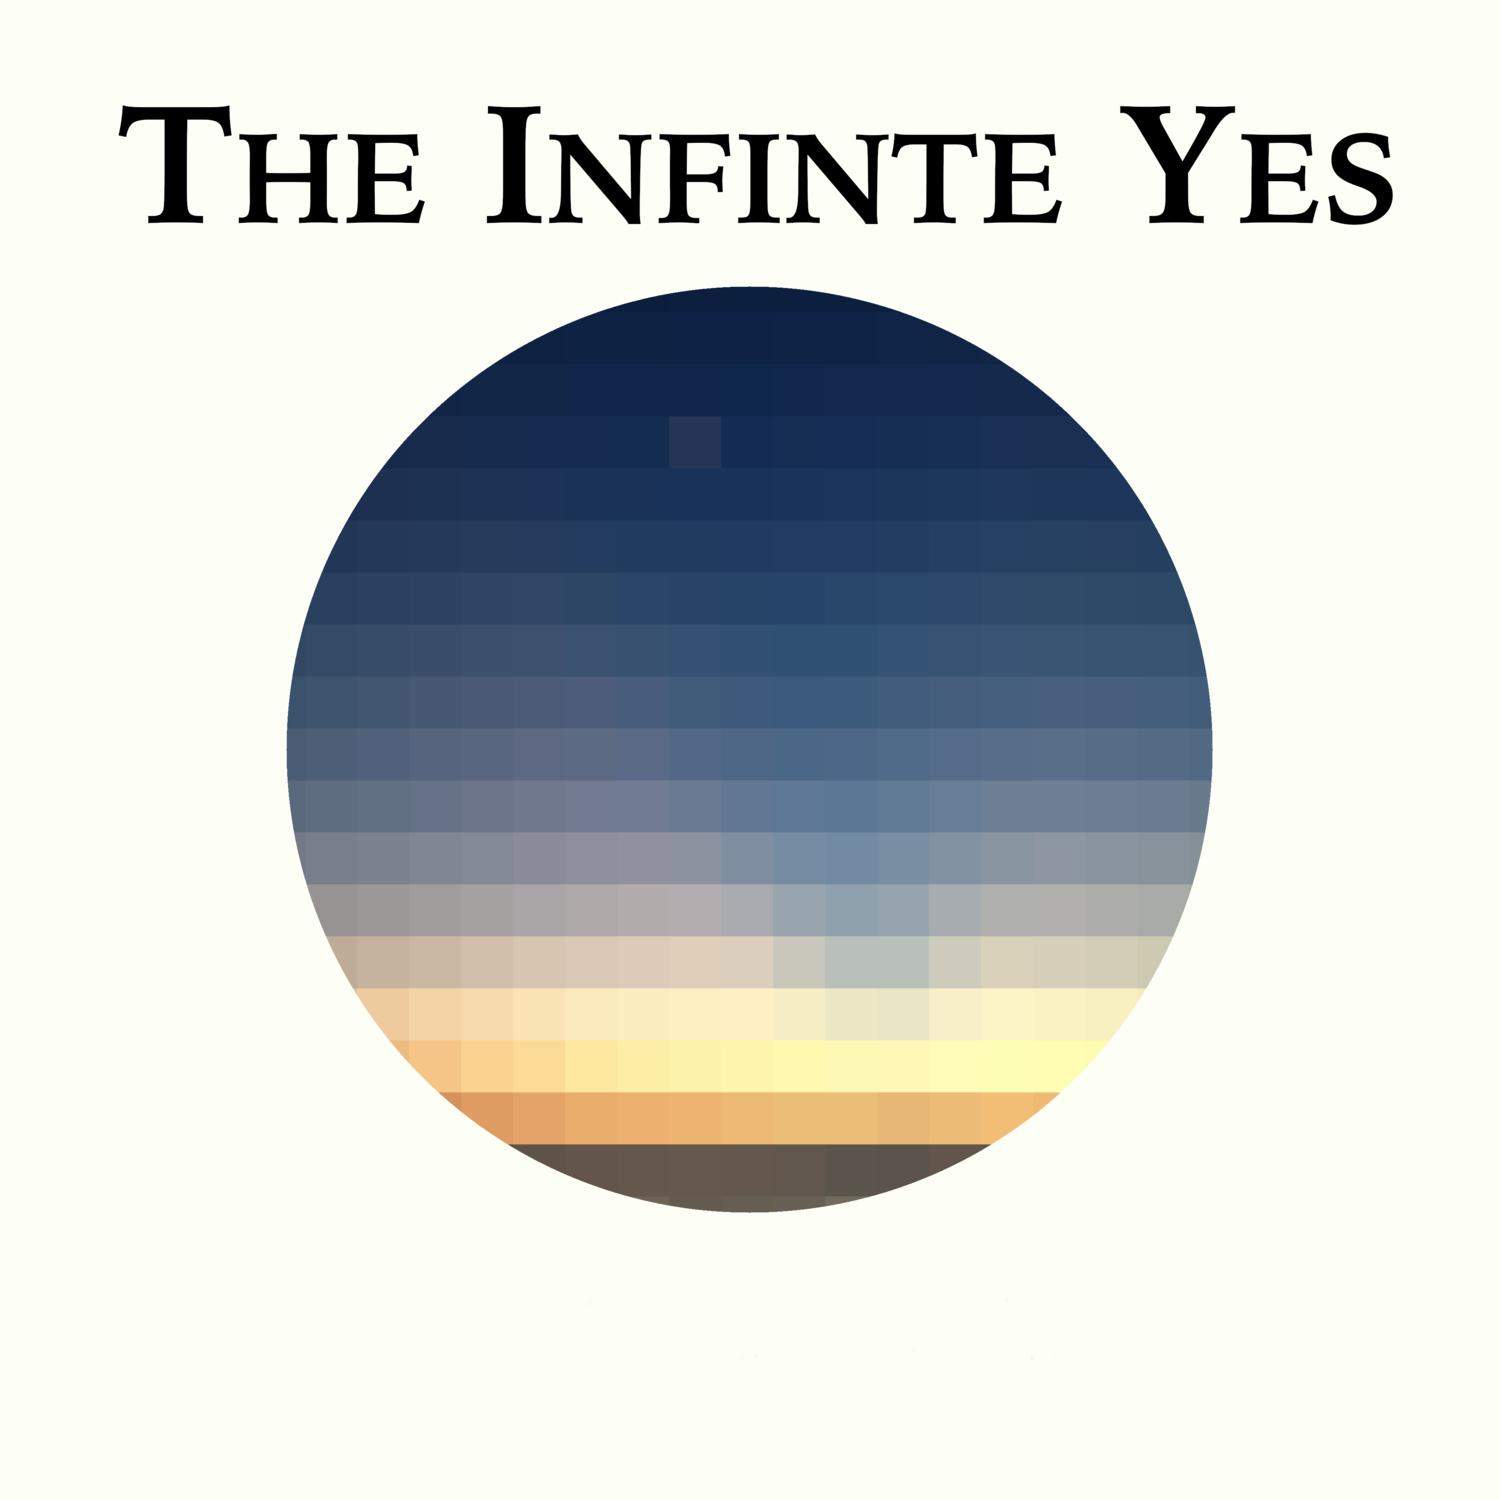 The Infinite Yes